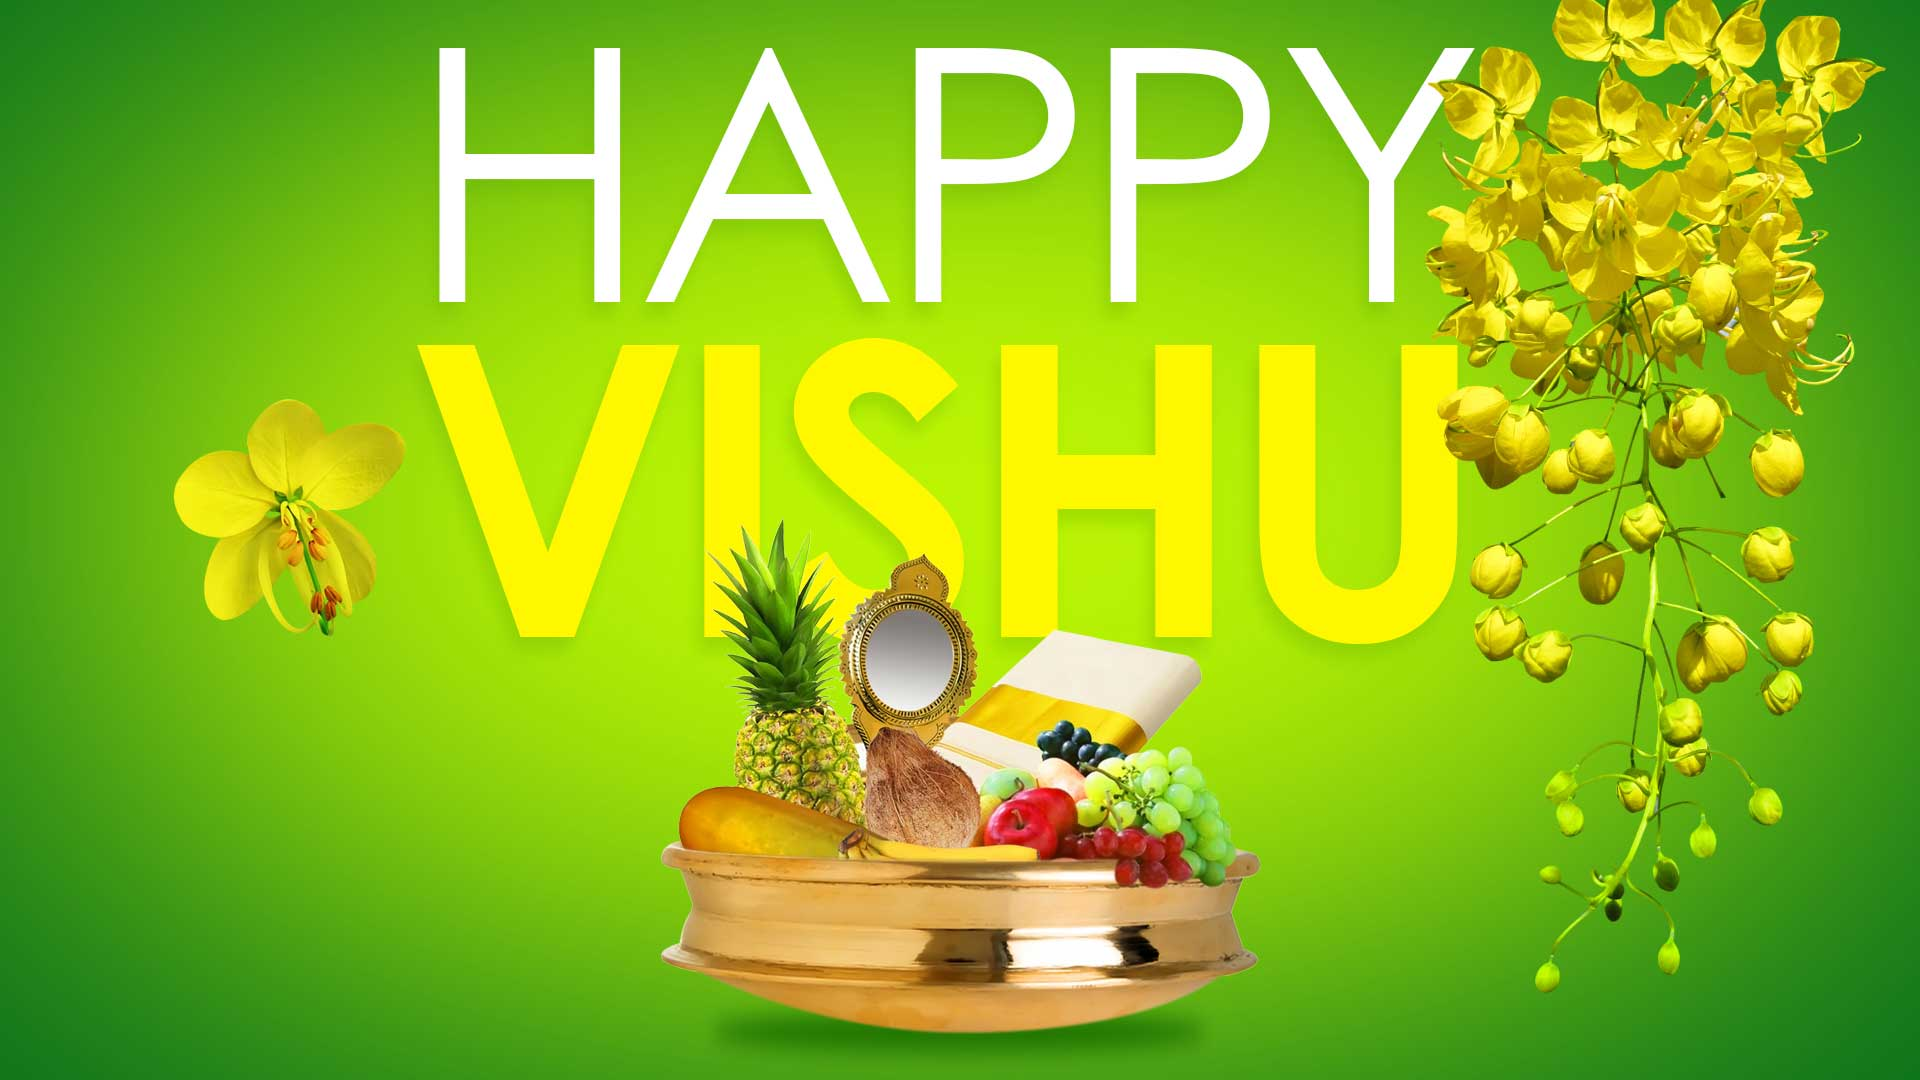 Vishu greeting cards dekochi photo journal download this card in full hd quality m4hsunfo Images